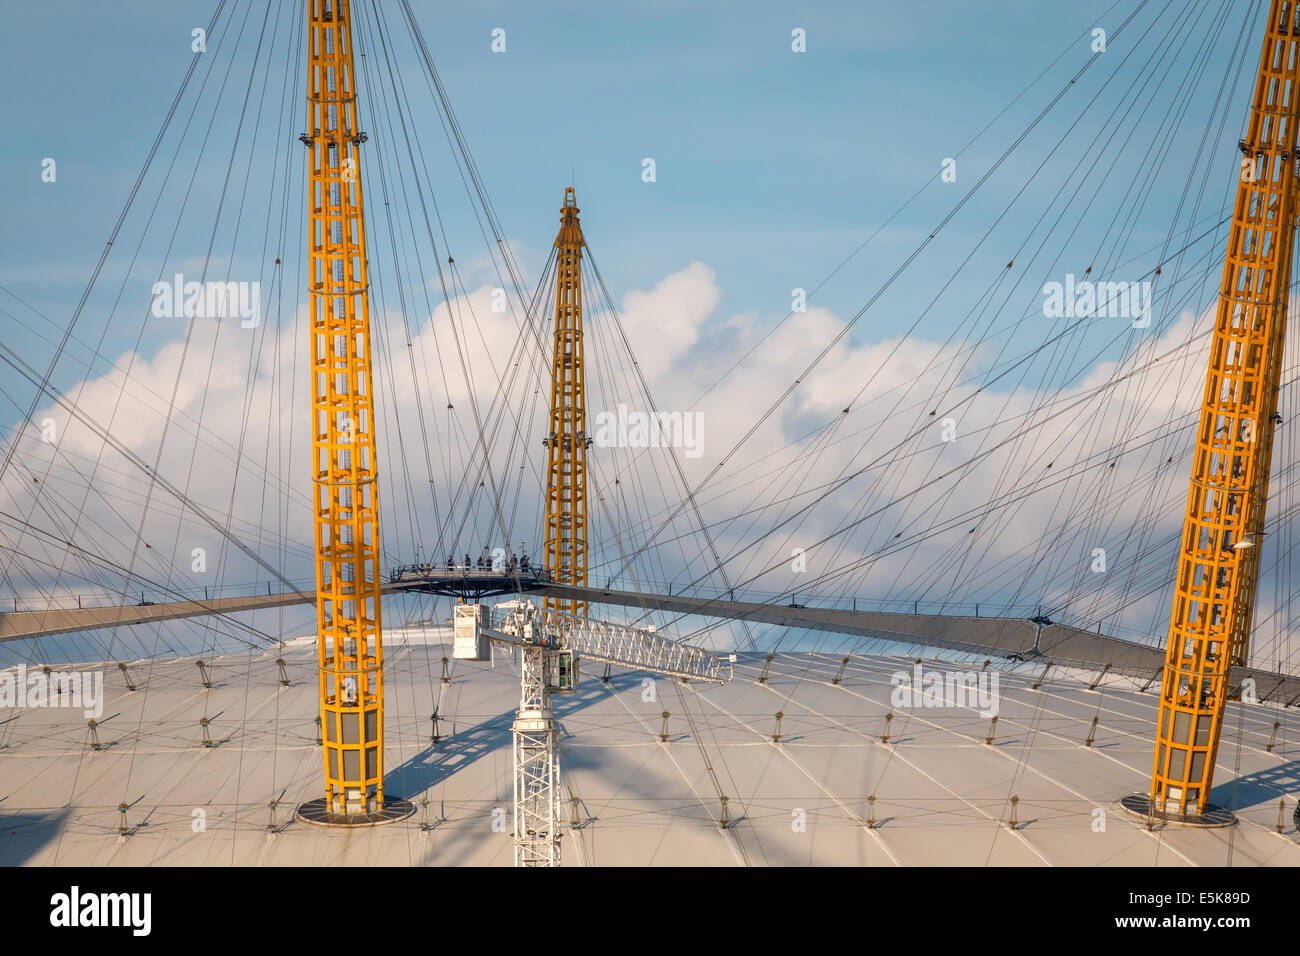 Detail of the O2 Arena's roof and people walking across Stock Photo